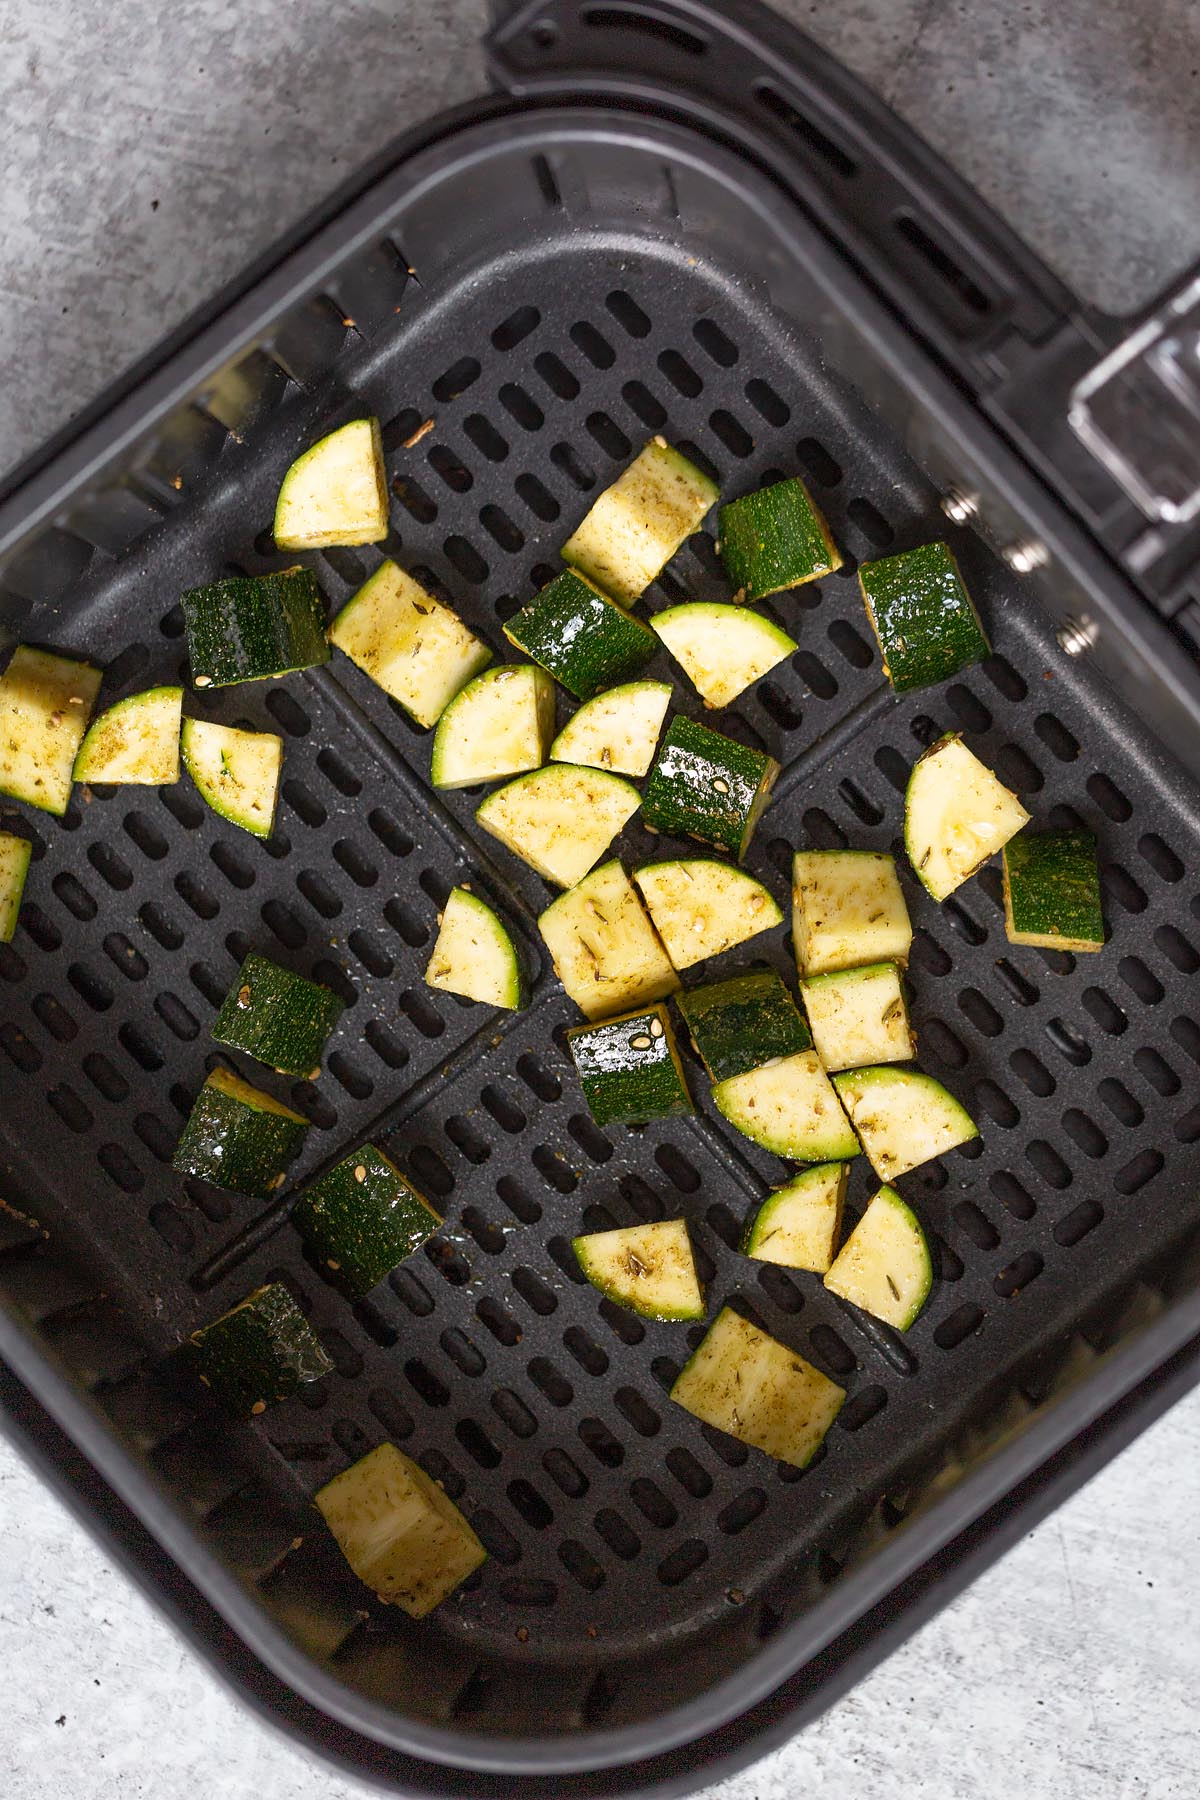 zucchini in an air fryer